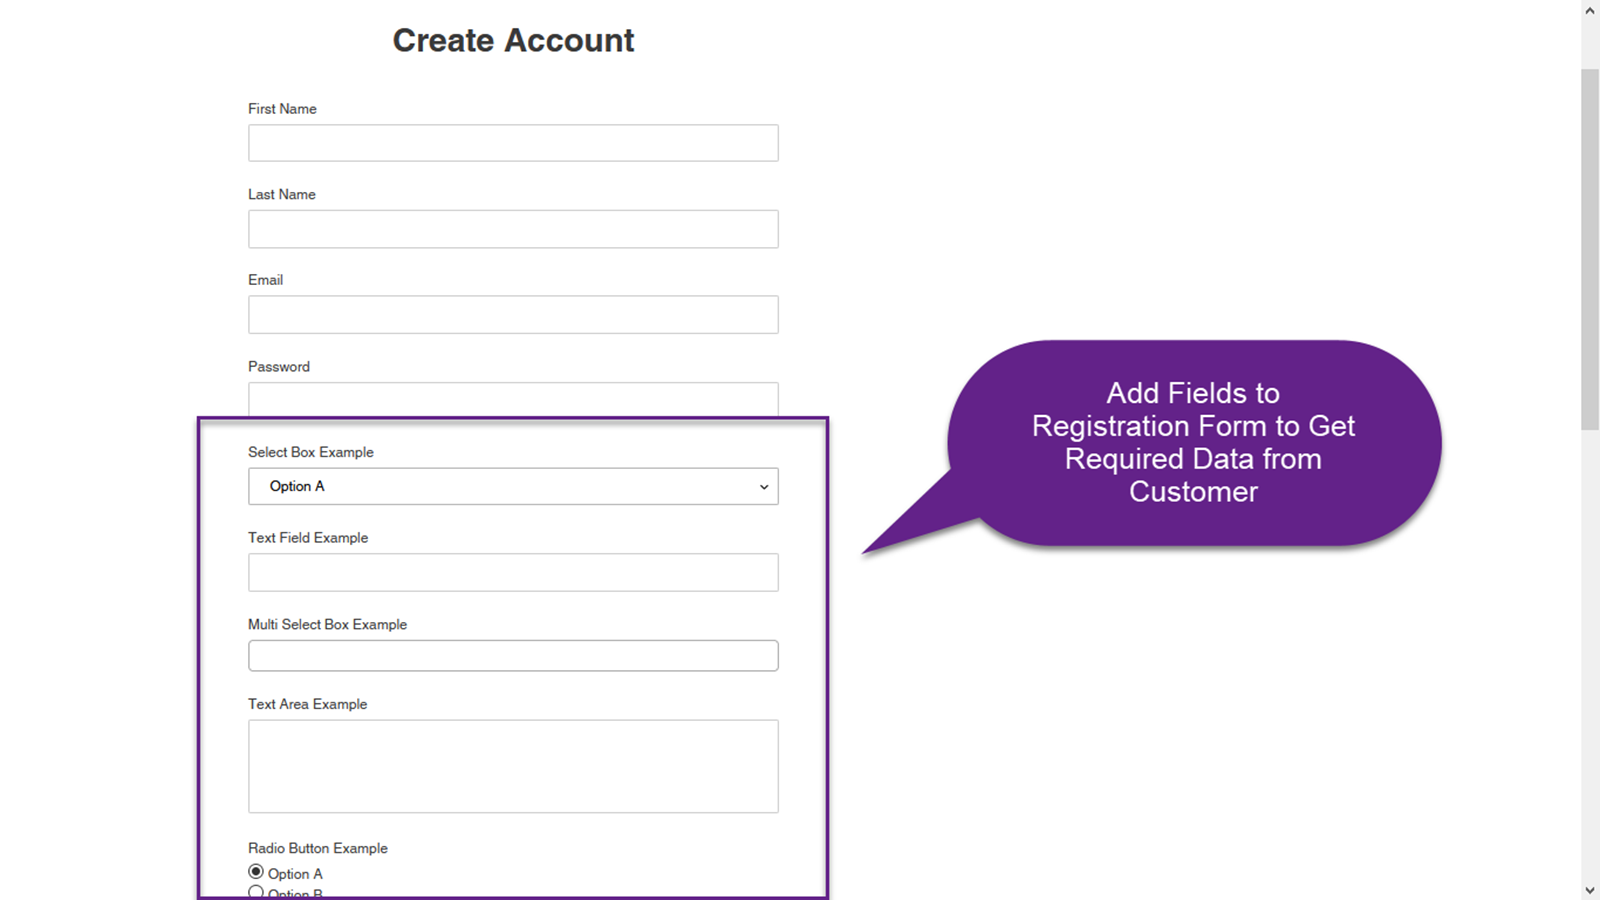 Add Fields to Registration Form to Get Data from Customers